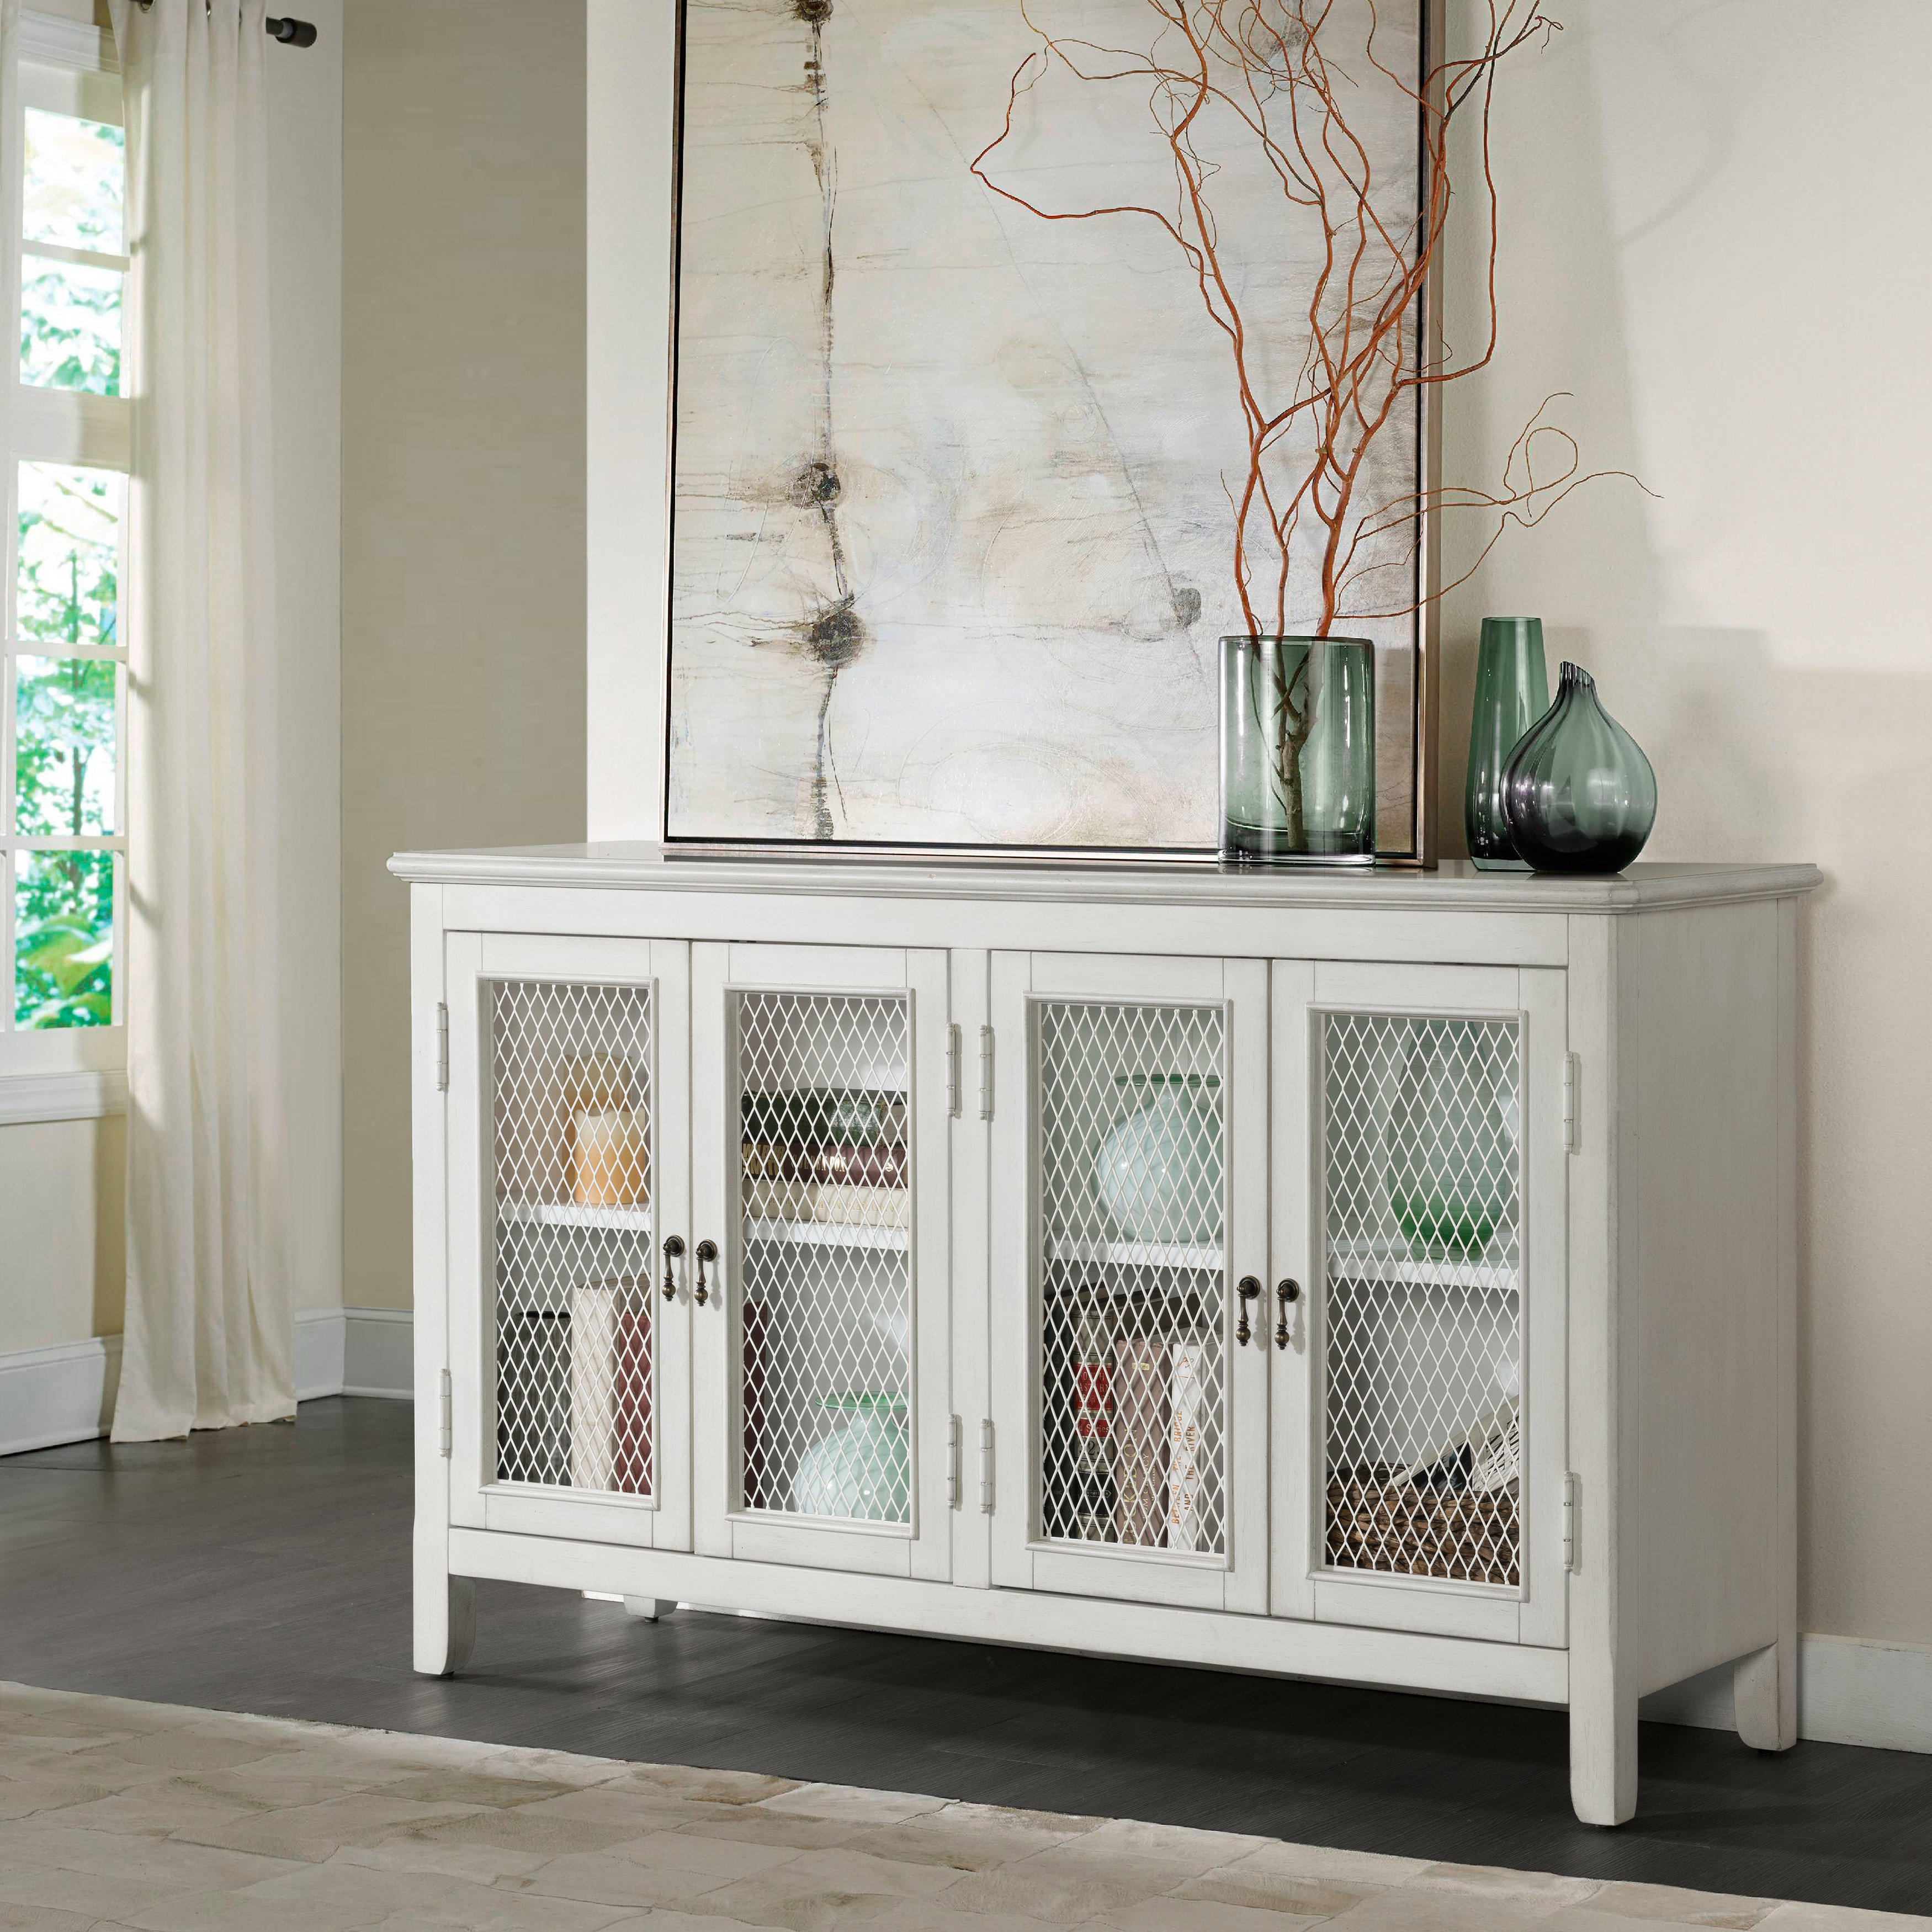 South Miami Sideboard | Joss & Main In Most Current South Miami Sideboards (View 11 of 20)